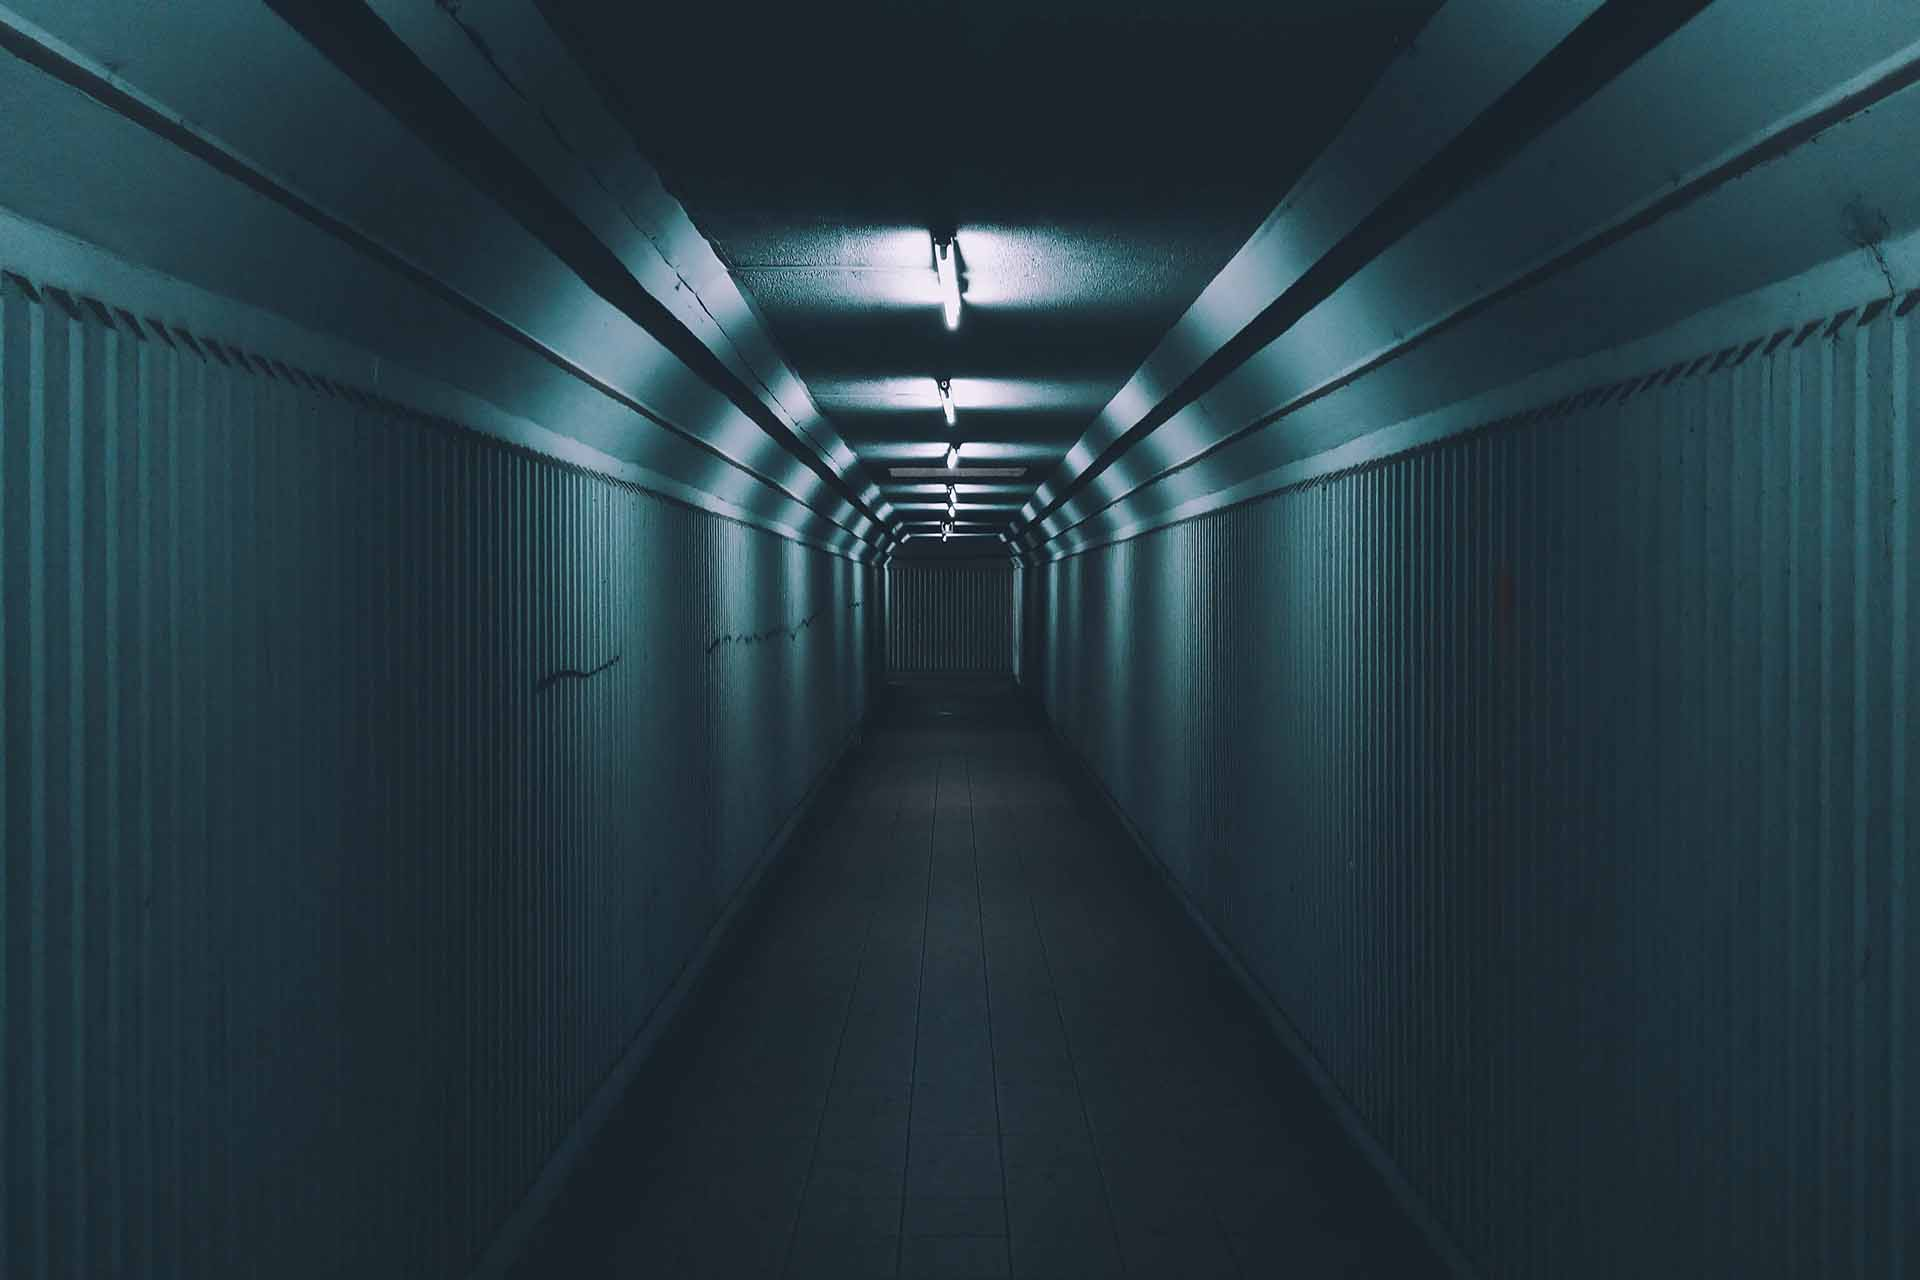 What benefits are there from escape rooms?